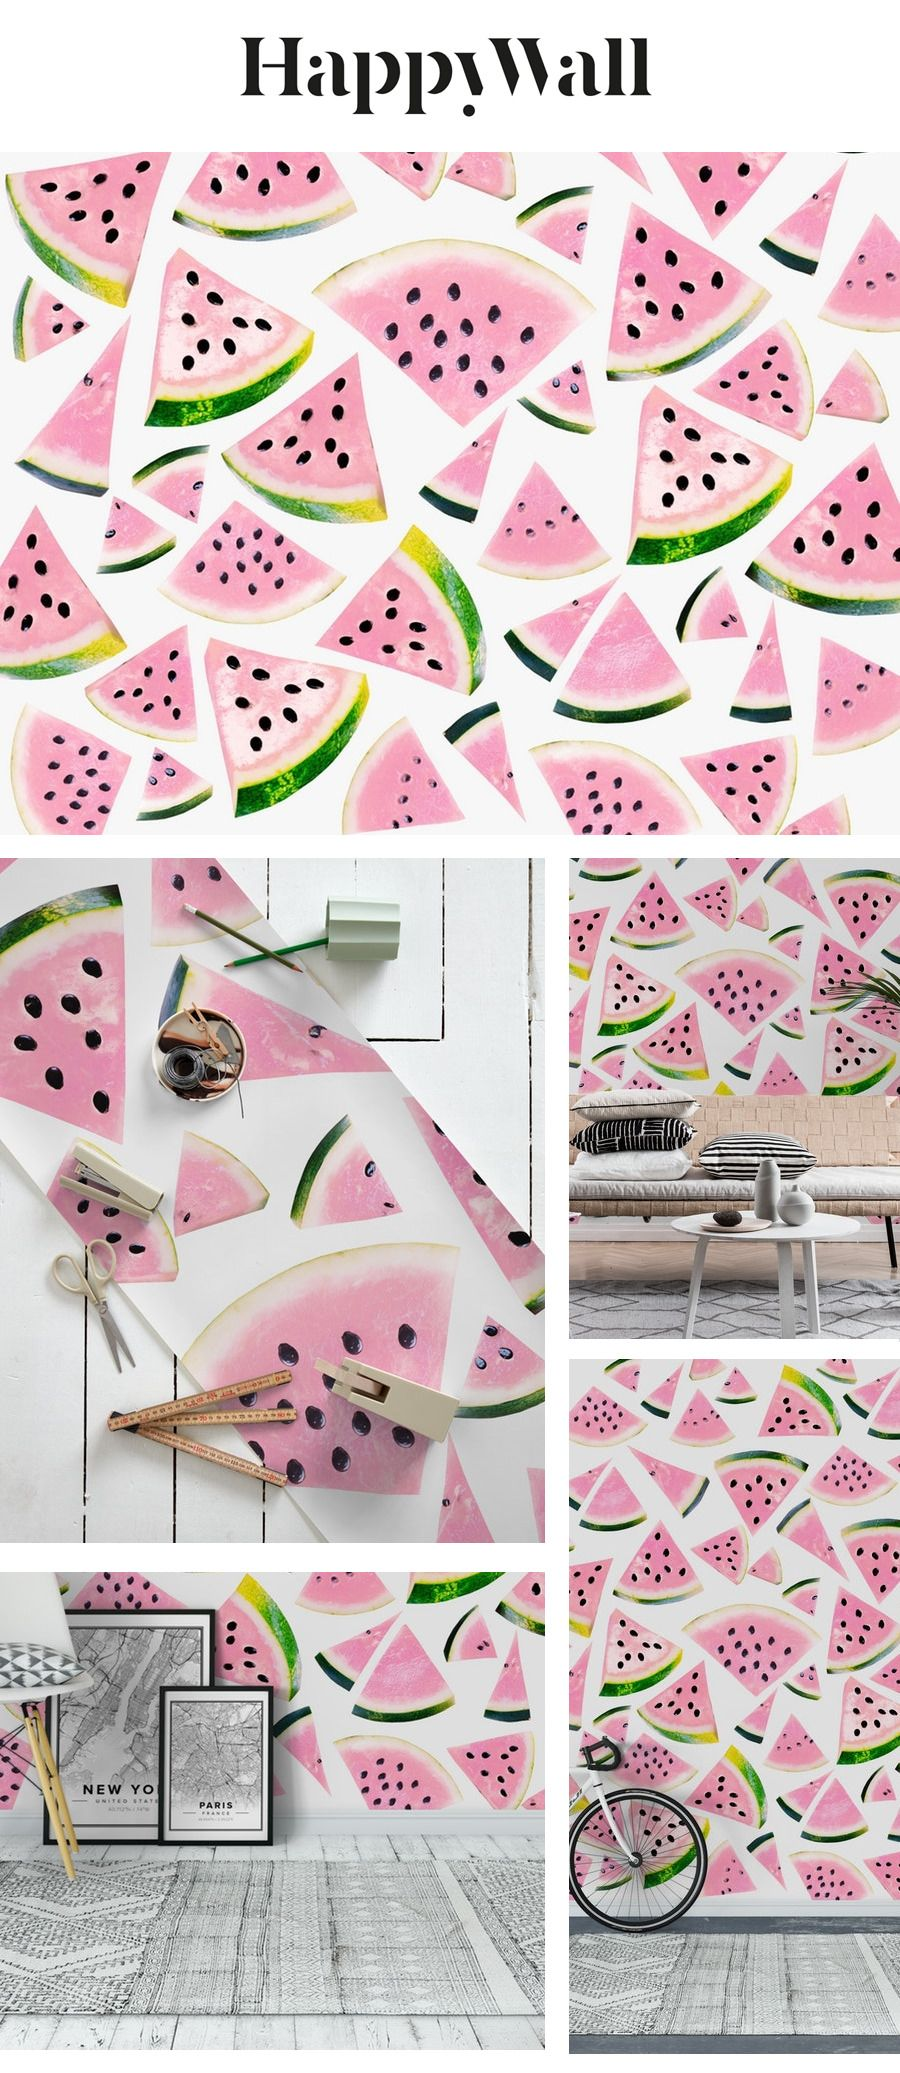 Watermelon Twist Vibes 3 Wall mural in 2020 Wall murals